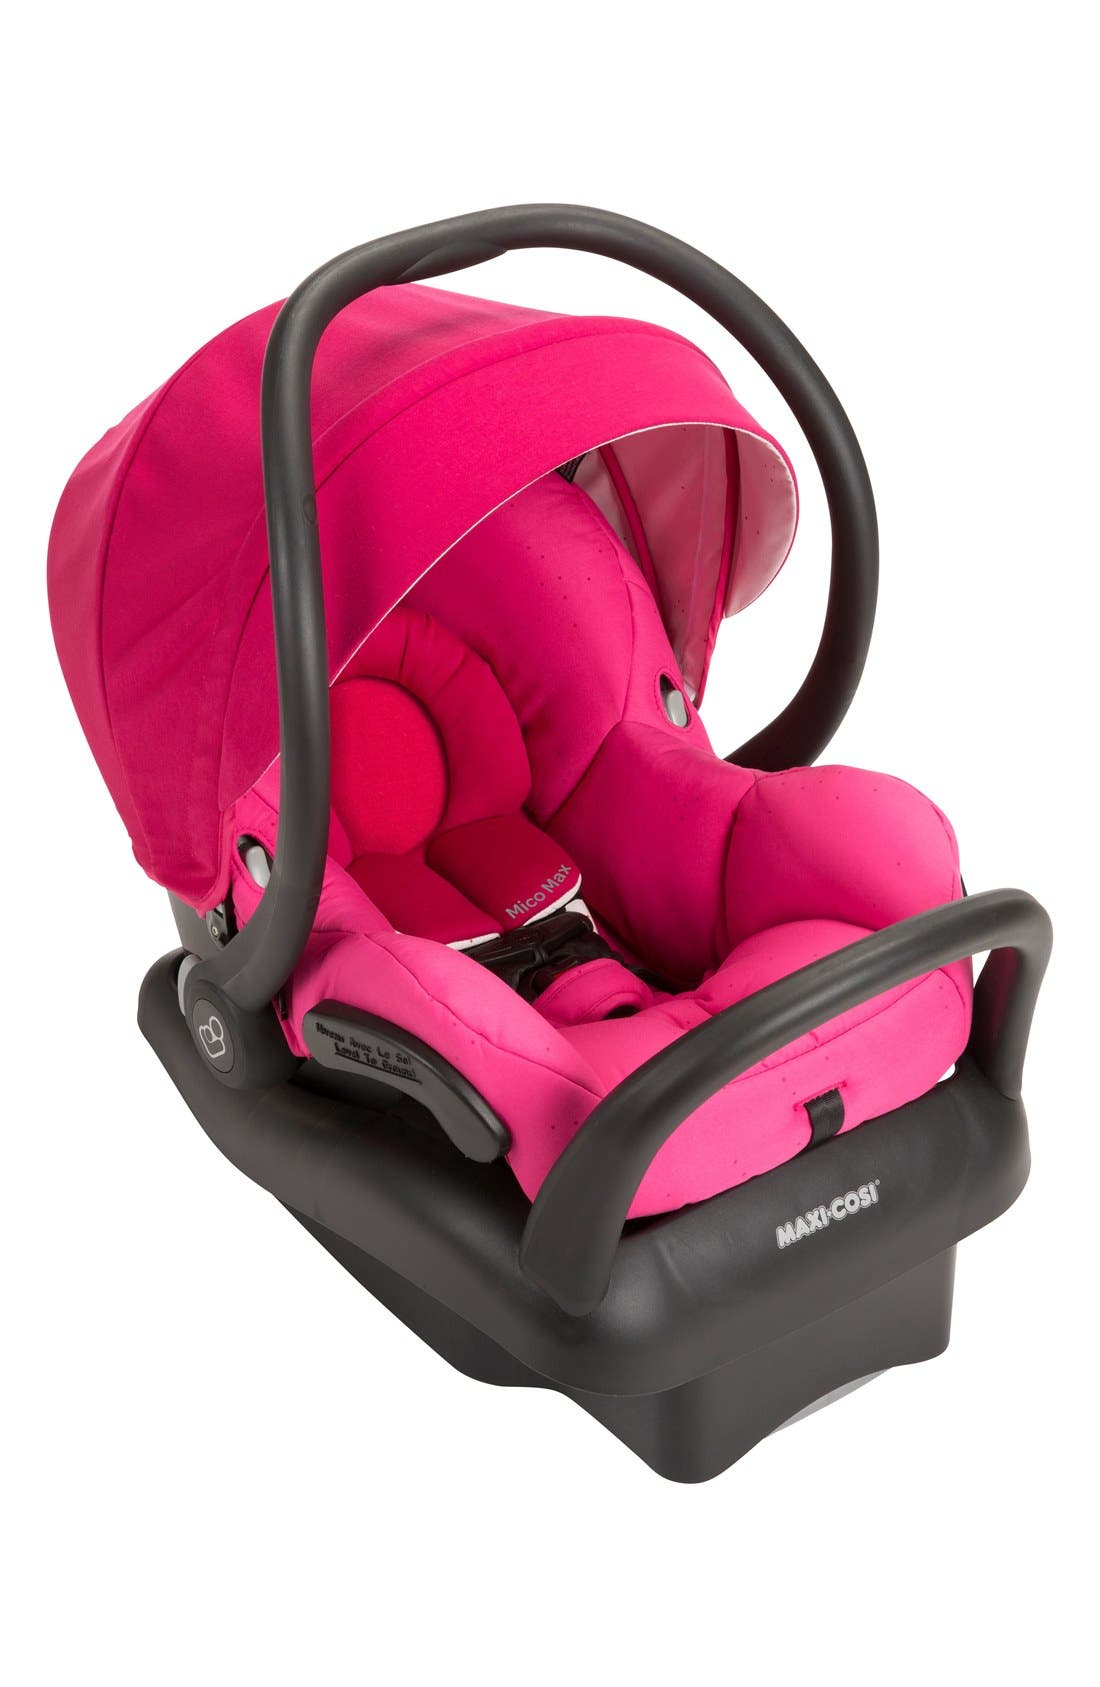 Mico Max 30 Infant Car Seat,                             Main thumbnail 1, color,                             Pink Berry